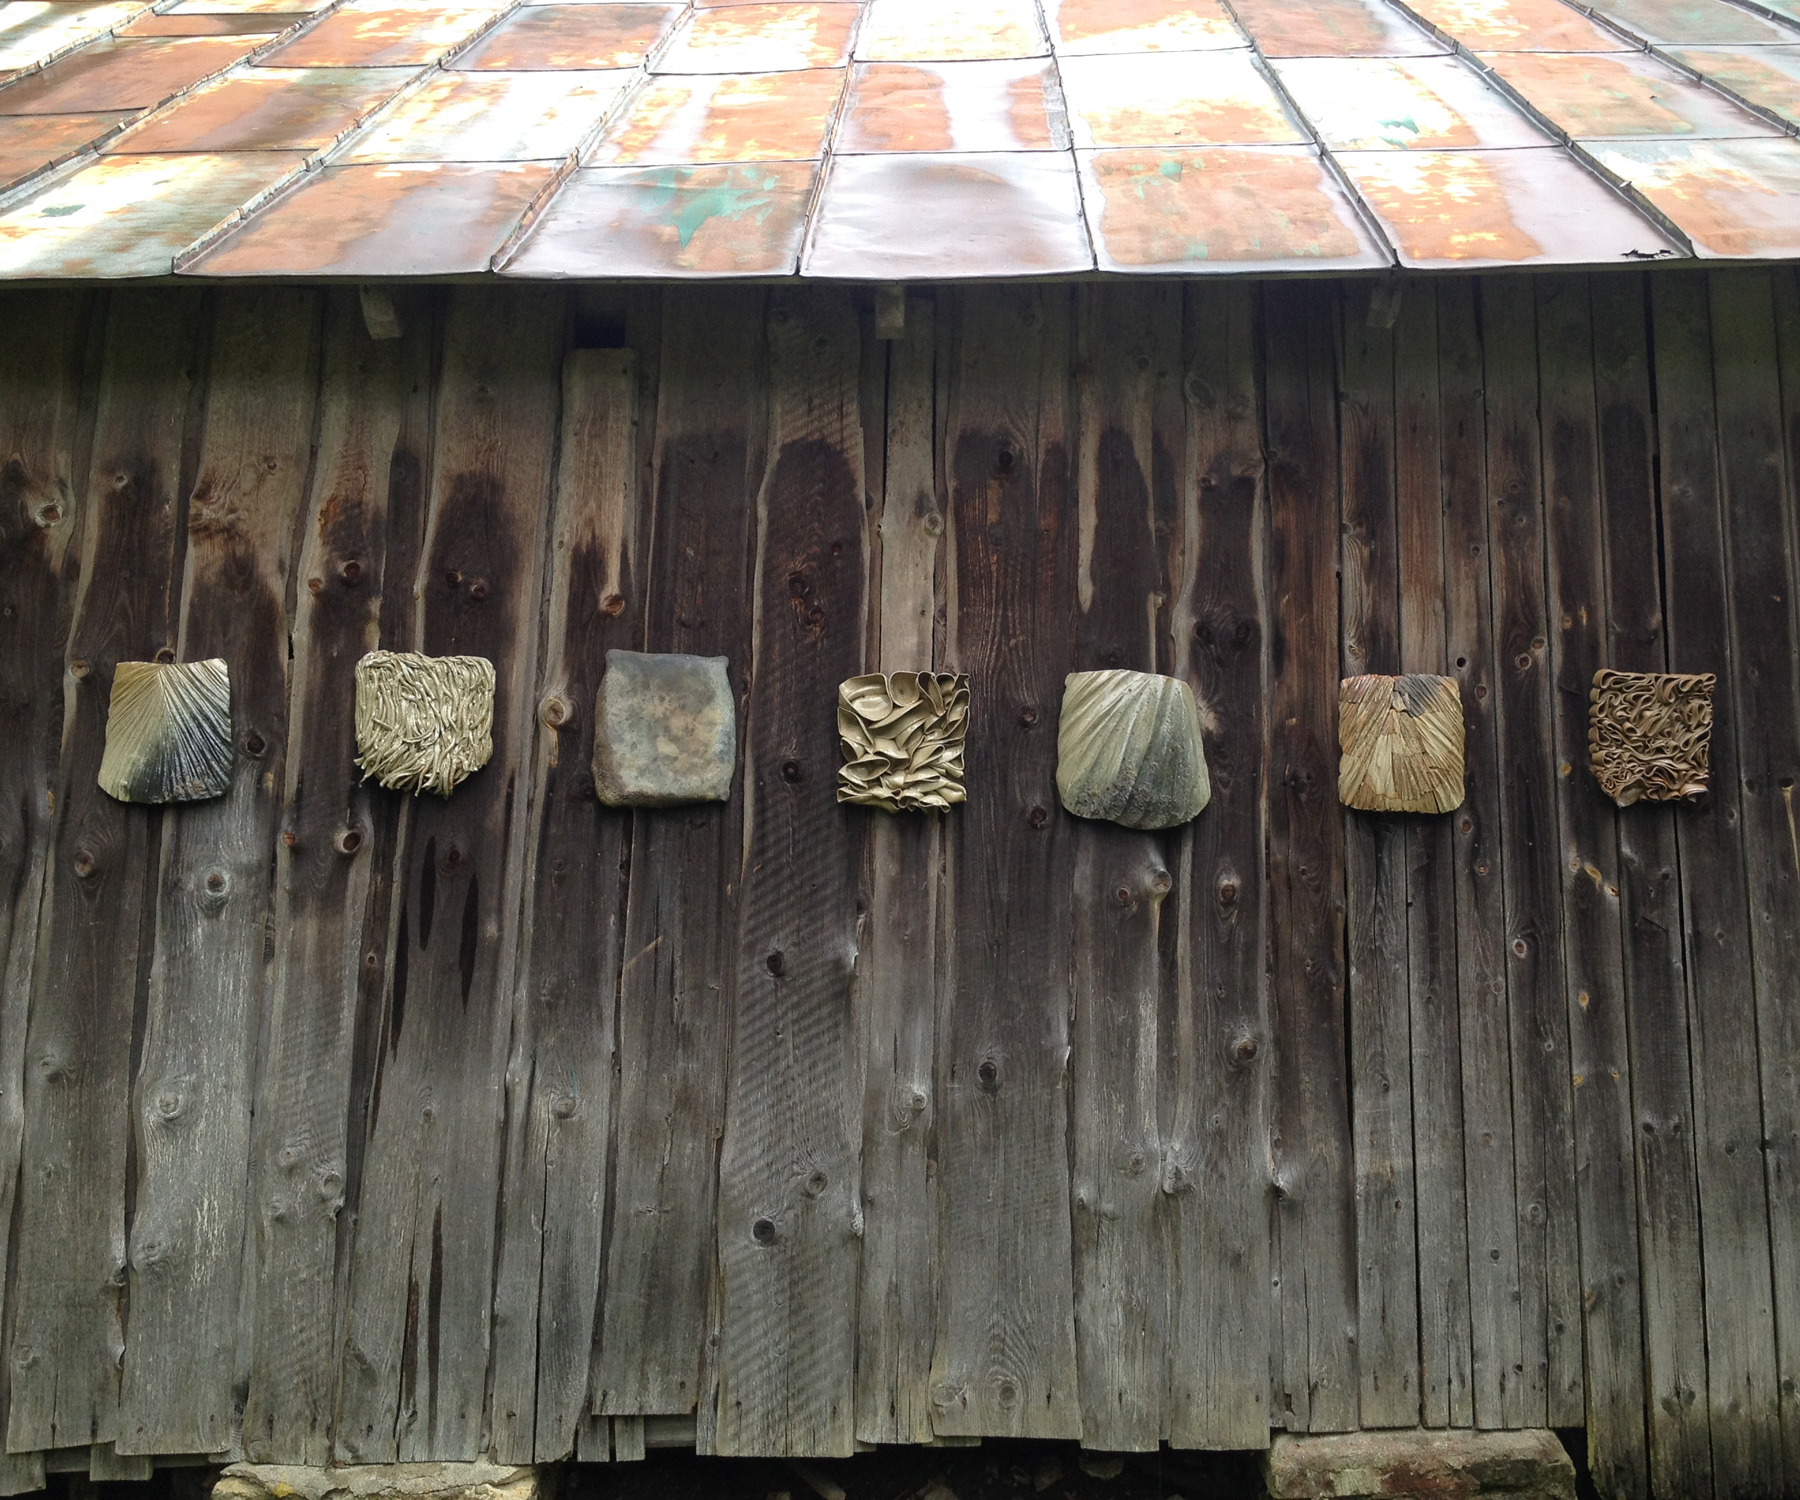 Texture Studies 1-7, wheel thrown and hand build wall hanging objects, wood fired in Anagama kiln.